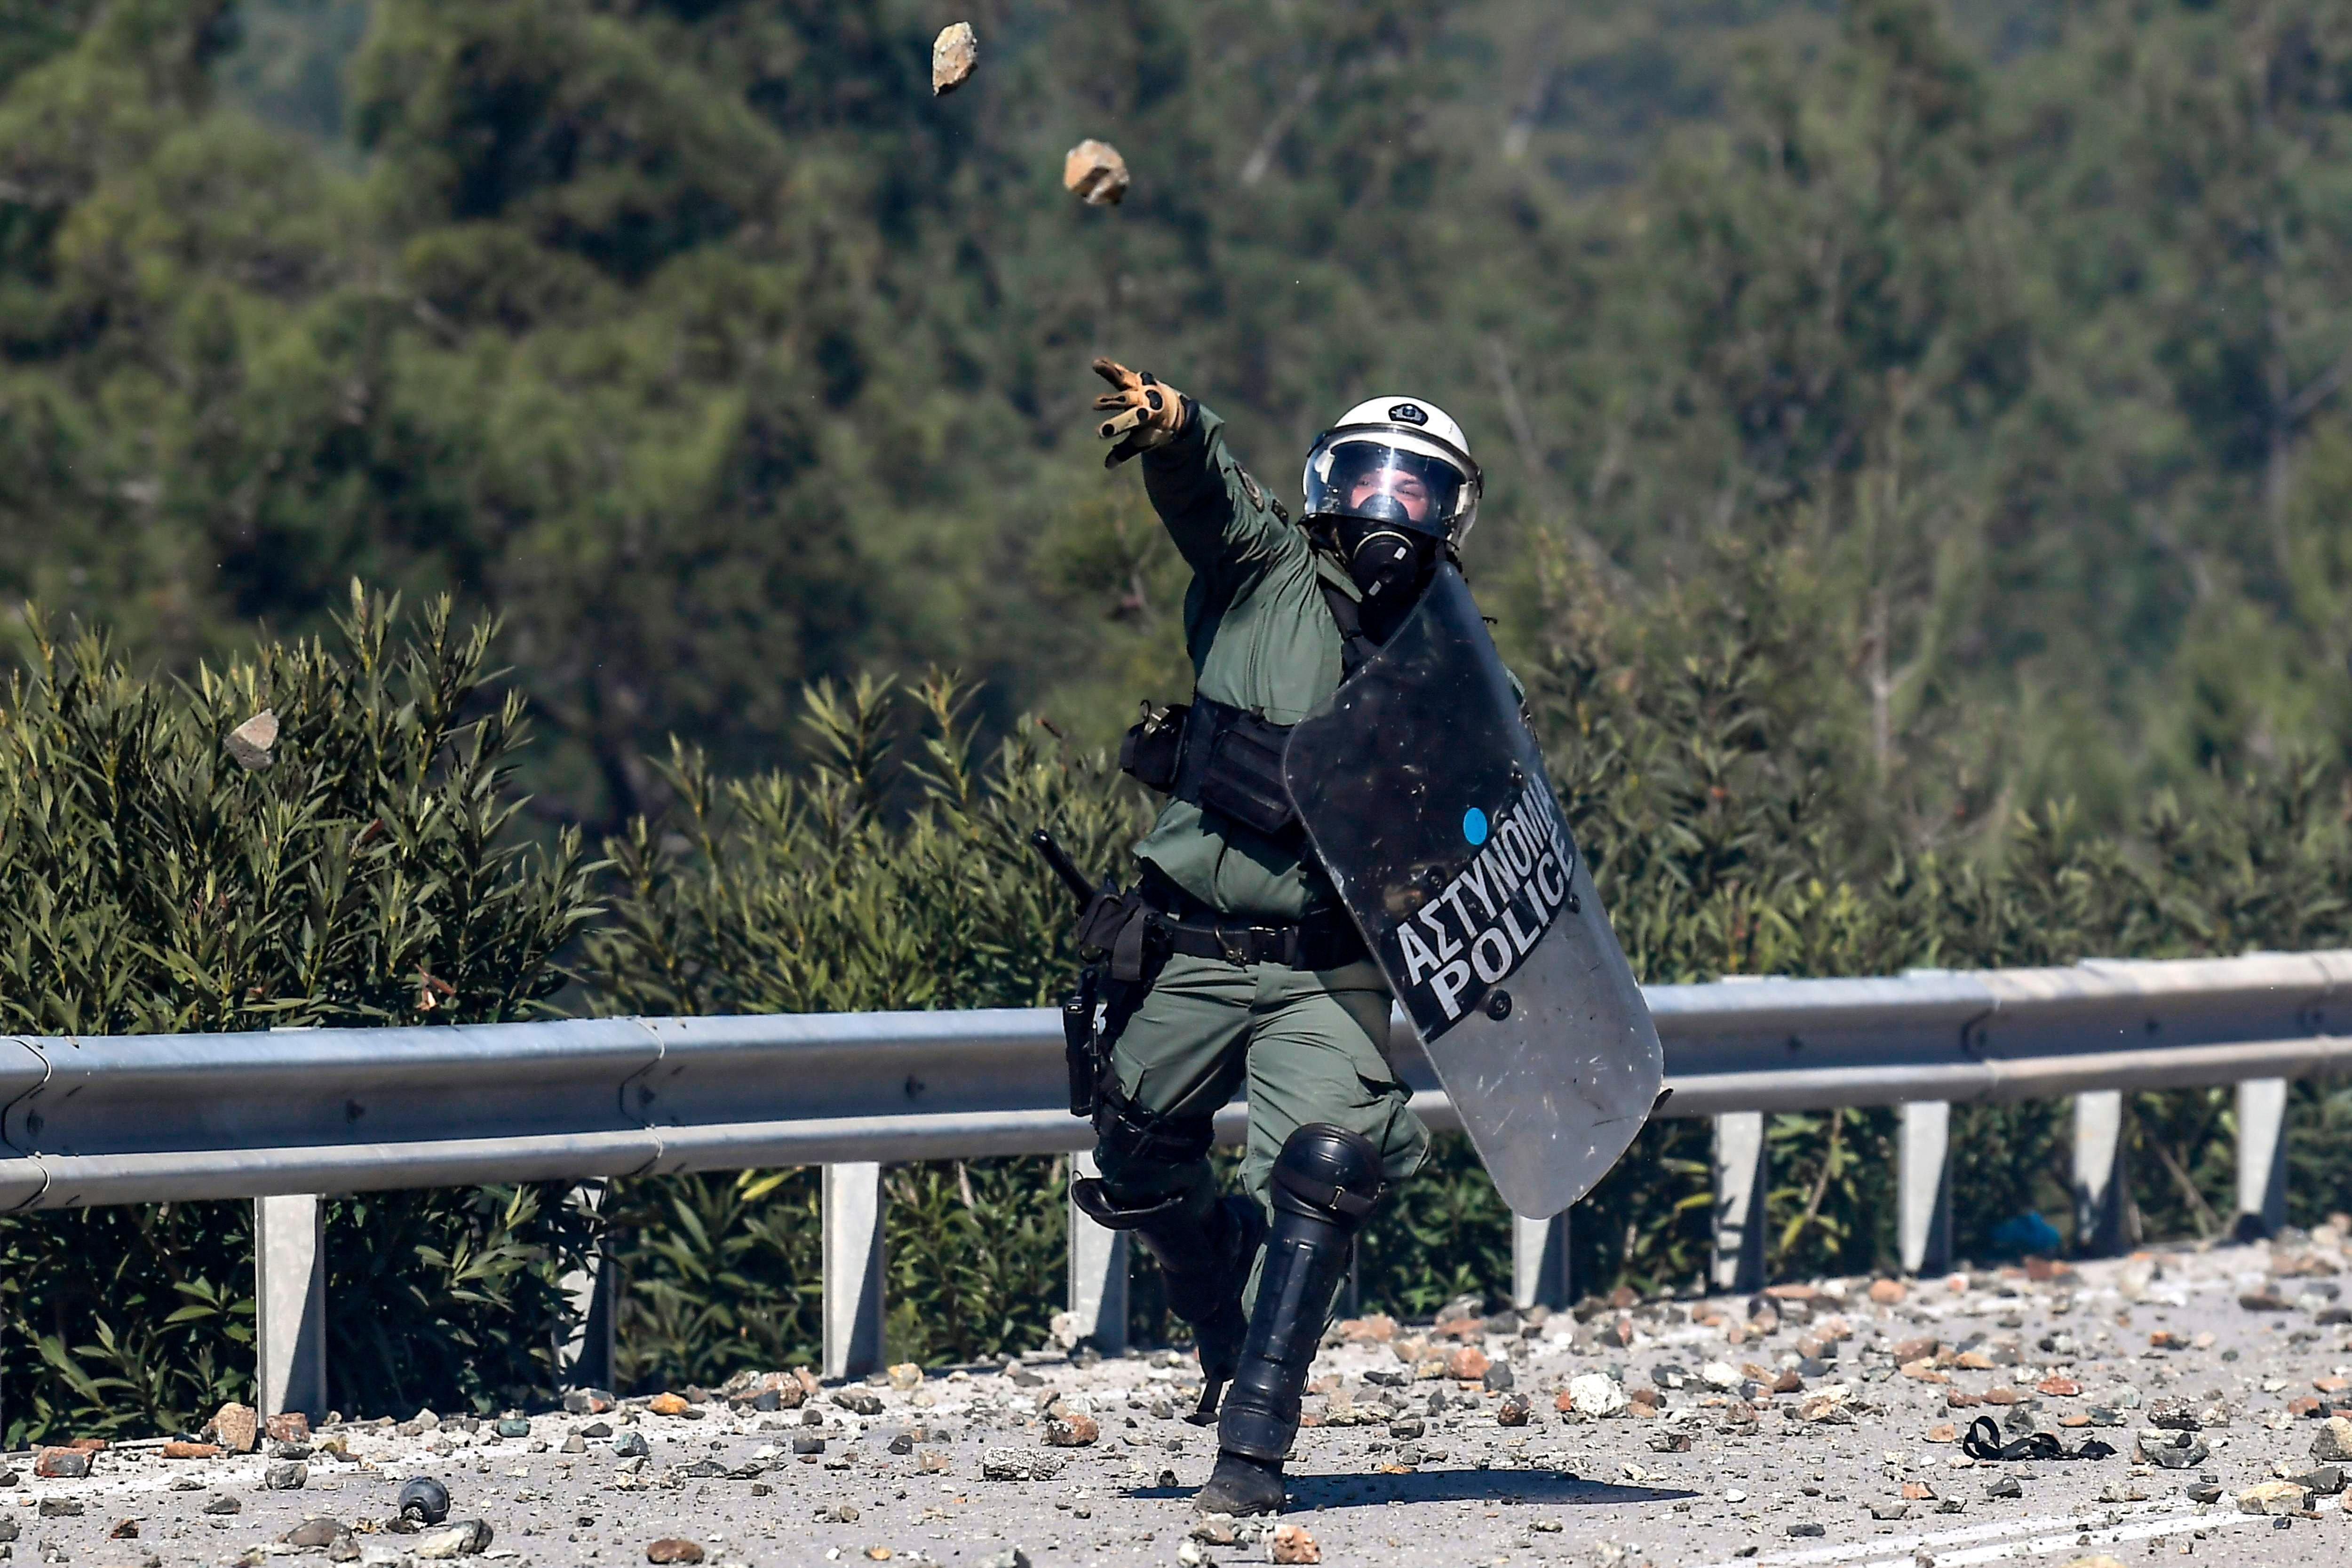 TOPSHOT - A Greek anti-riot officer lobs a stone back at demonstrators during clashes against the construction of a new controversial migrant camp near the town of Mantamados on the northeastern Aegean island of Lesbos, on February 26, 2020. - The Greek islands of Lesbos, Chios and Samos staged a general strike on February 26, as protests against the construction of new migrant camps intensified. For a second day, protesters on Lesbos faced off against riot police near the town of Mantamados, close to the site of a planned camp for up to 7,000 people. Small groups of protesters threw stones and firebombs at the police, who responded with tear gas and flash grenades. (Photo by ARIS MESSINIS / AFP)